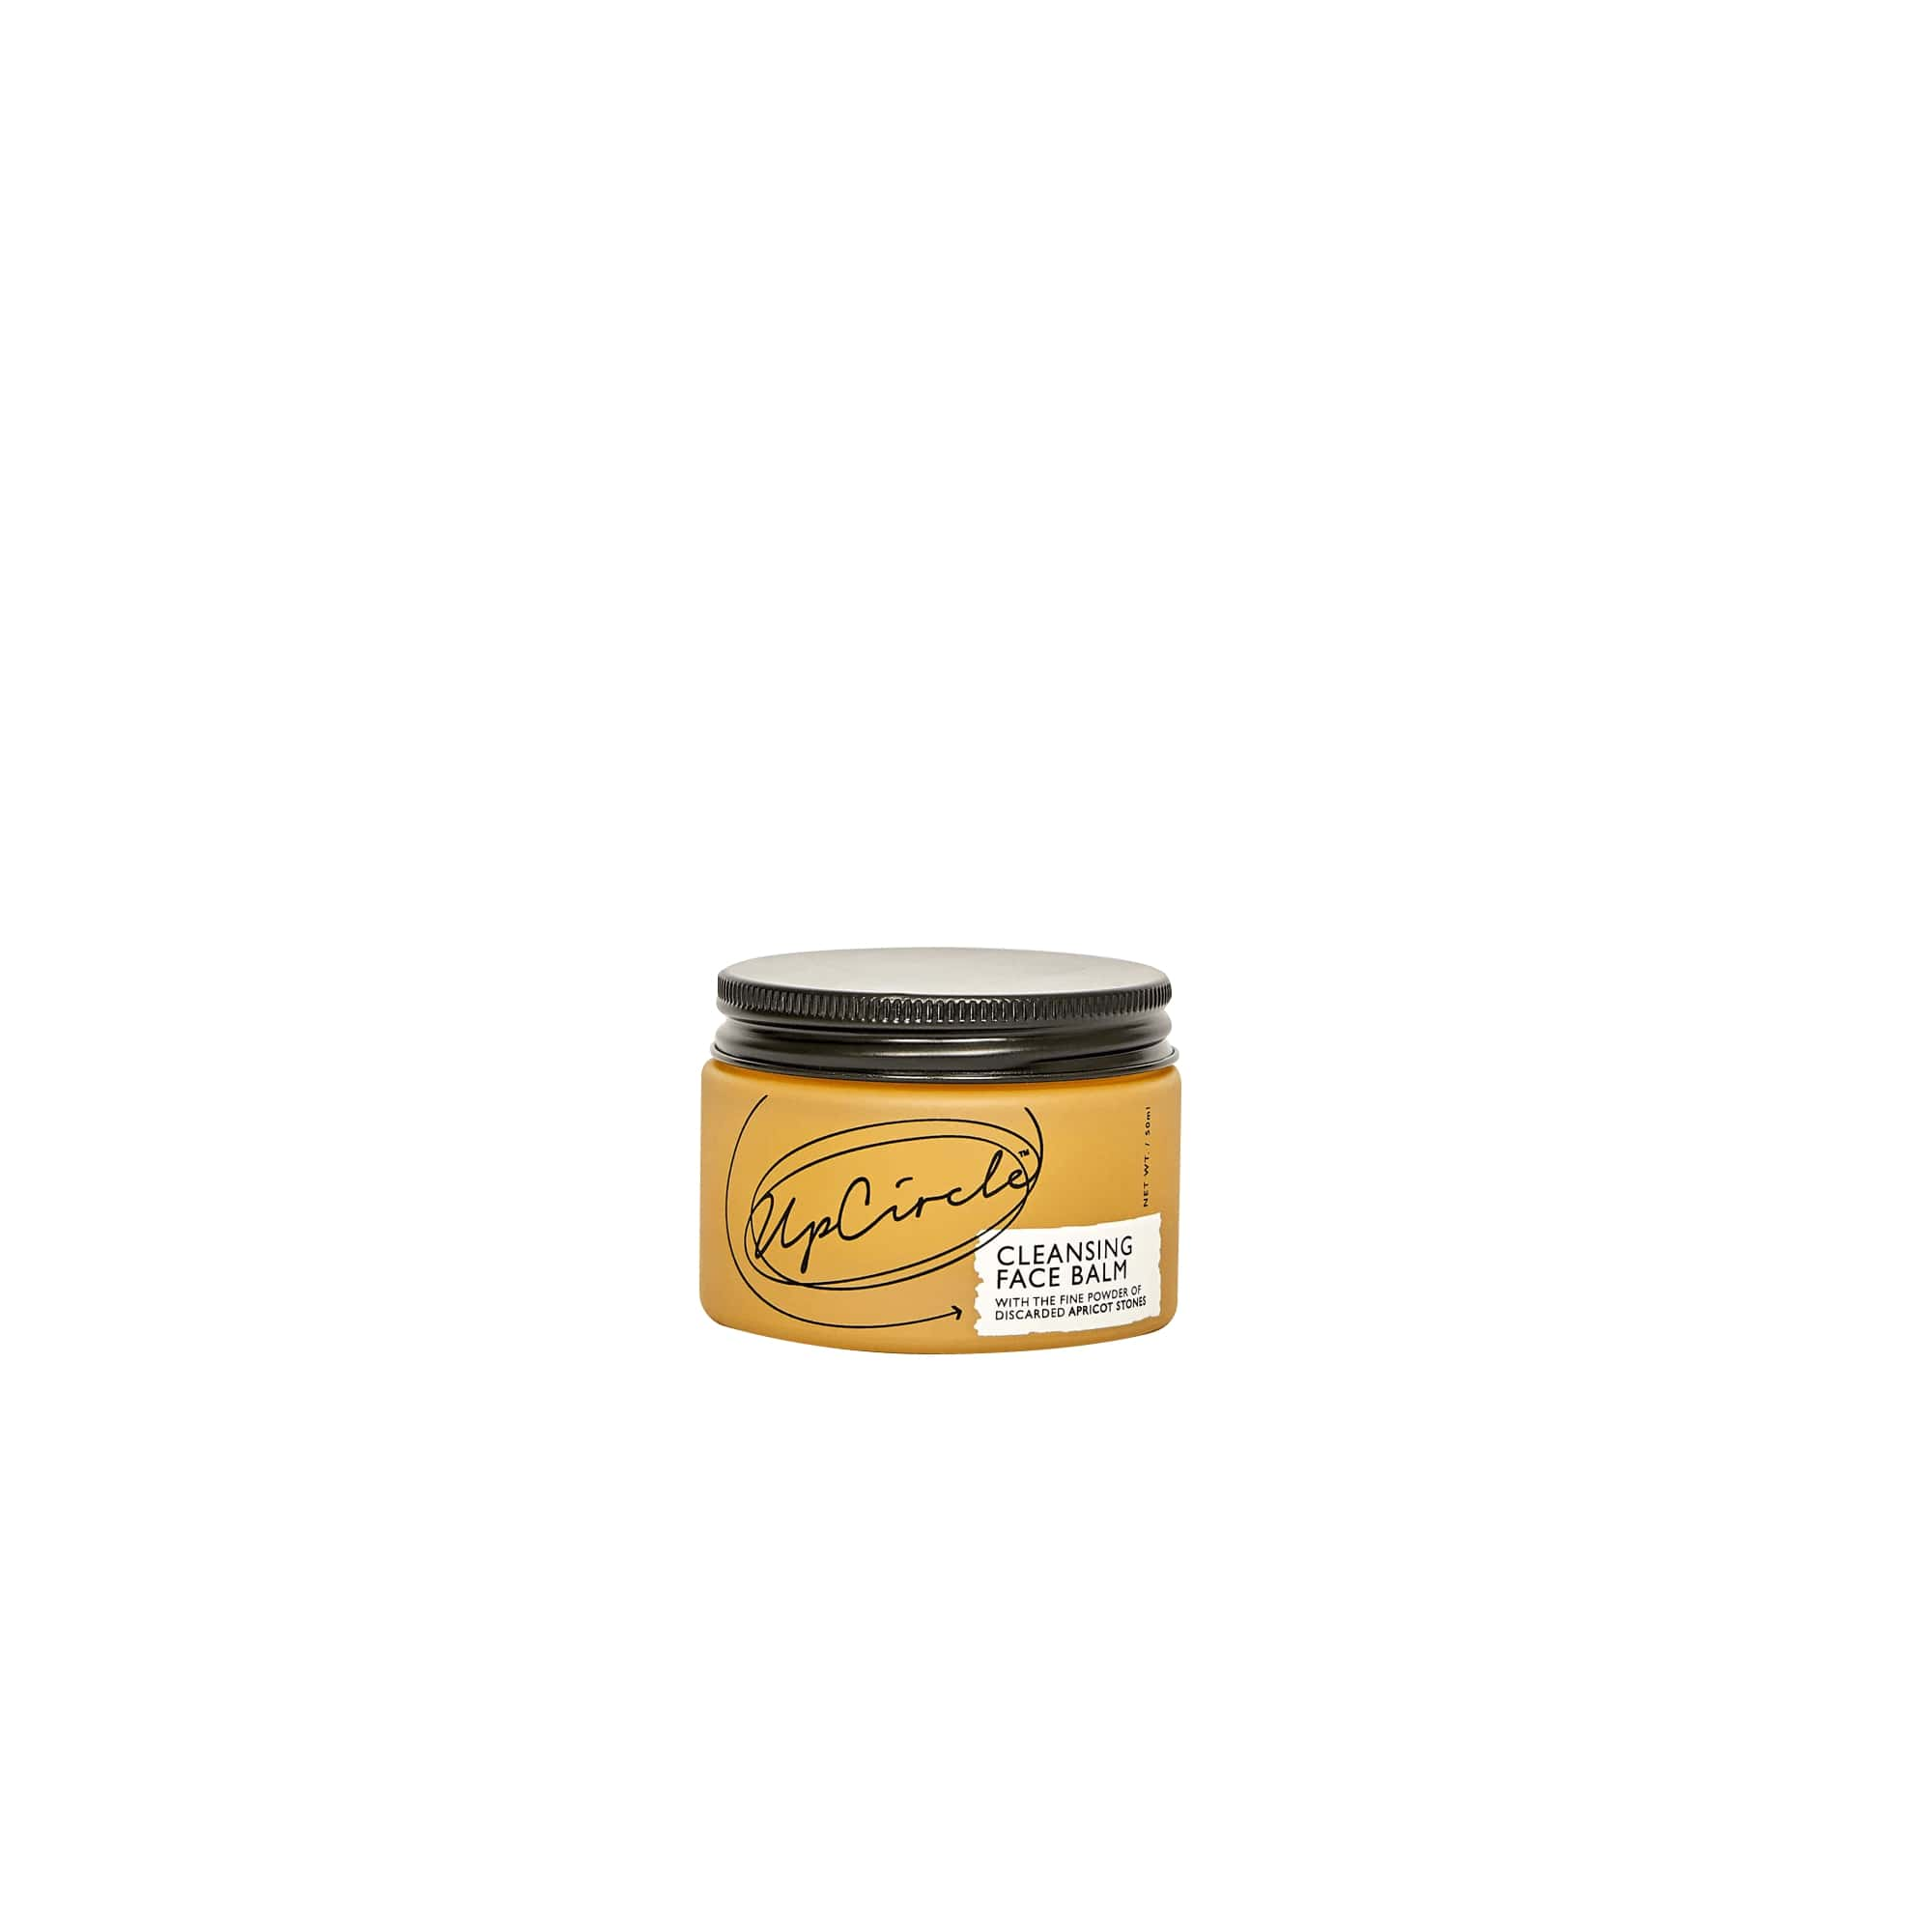 UpCircle Apricot Cleansing Face Balm, 50 ml